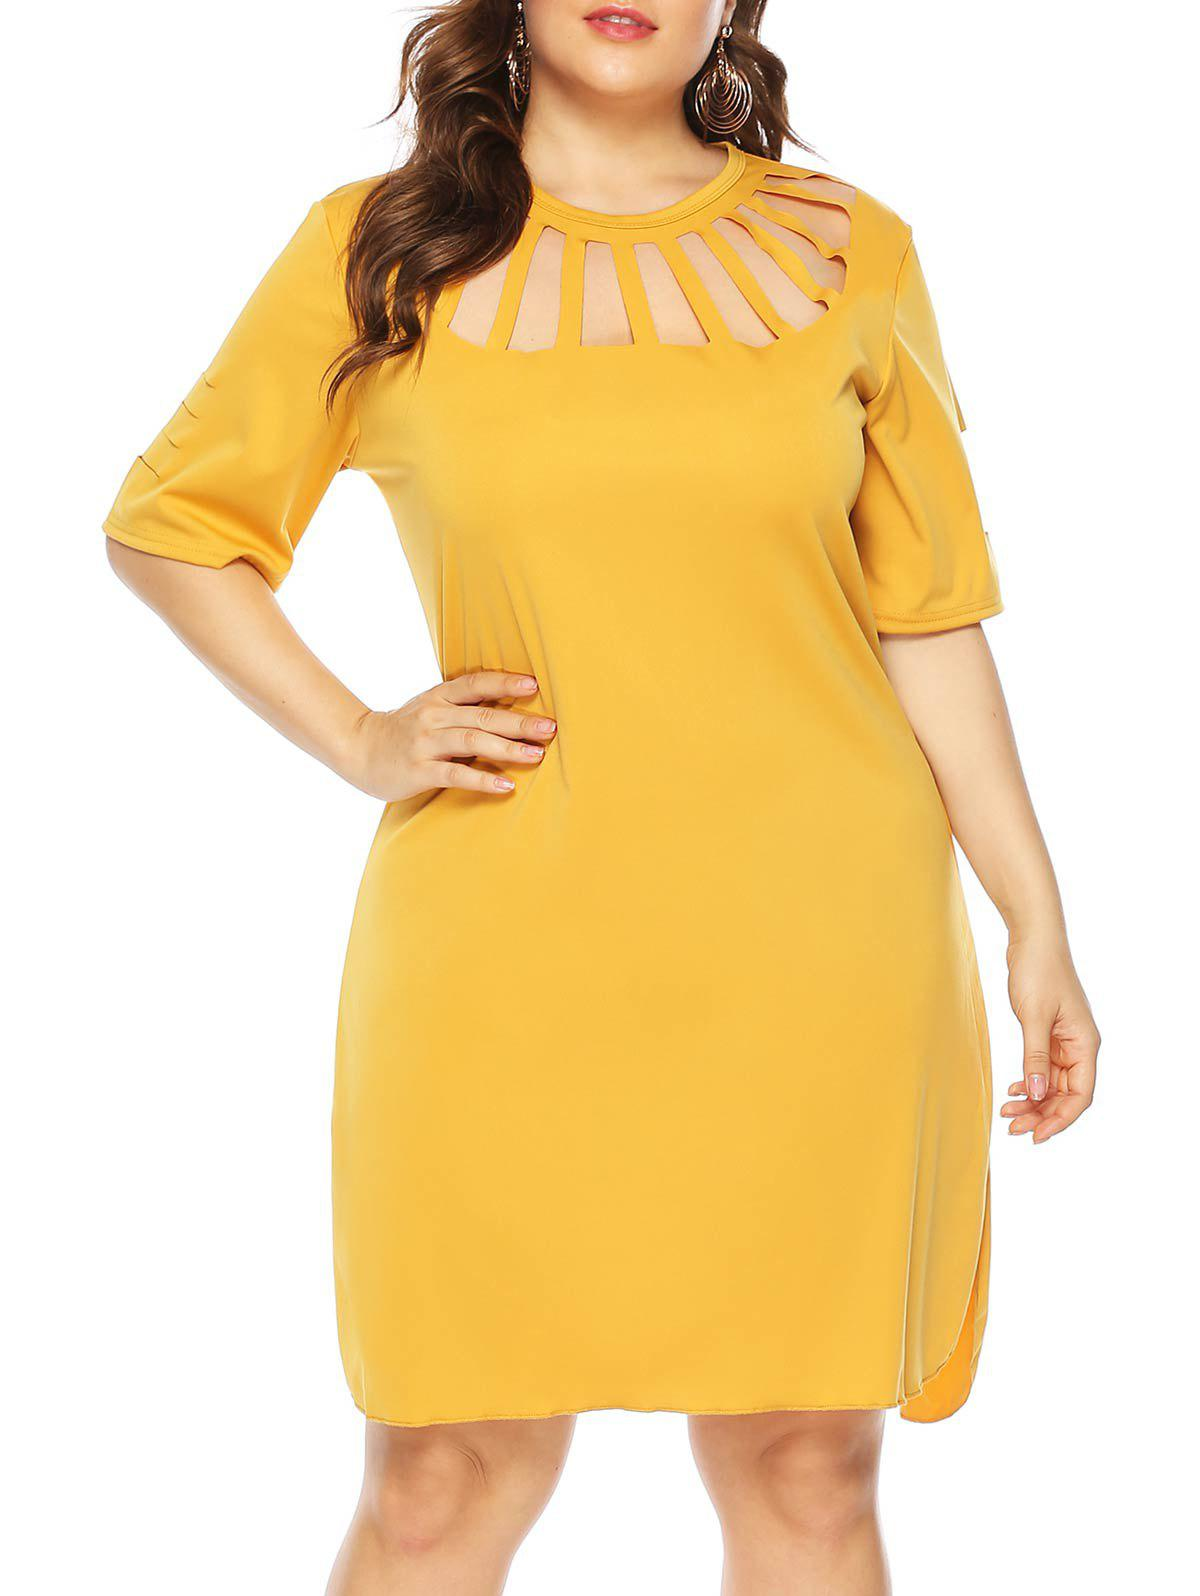 Buy Cutout Casual Tee Plus Size Dress